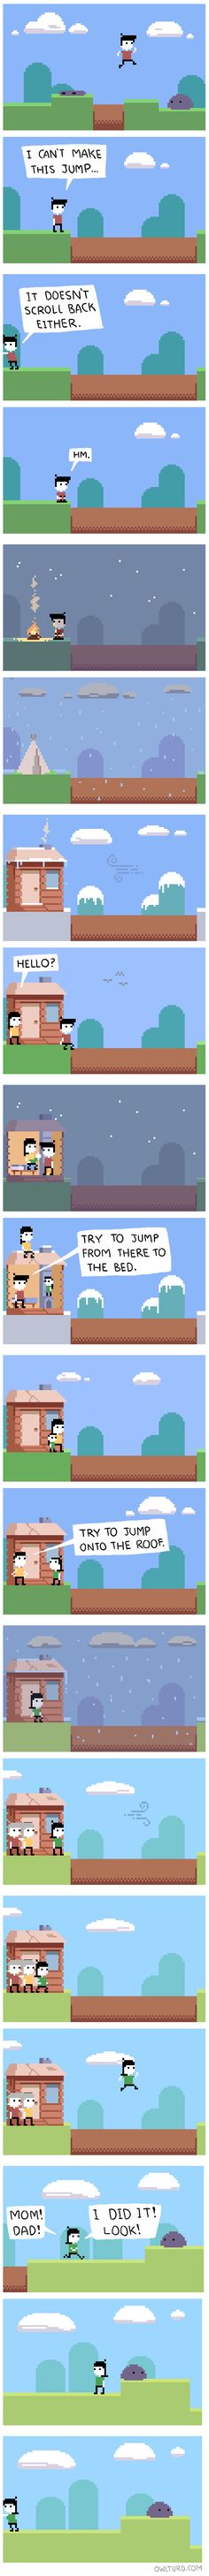 Sidescrolling Games